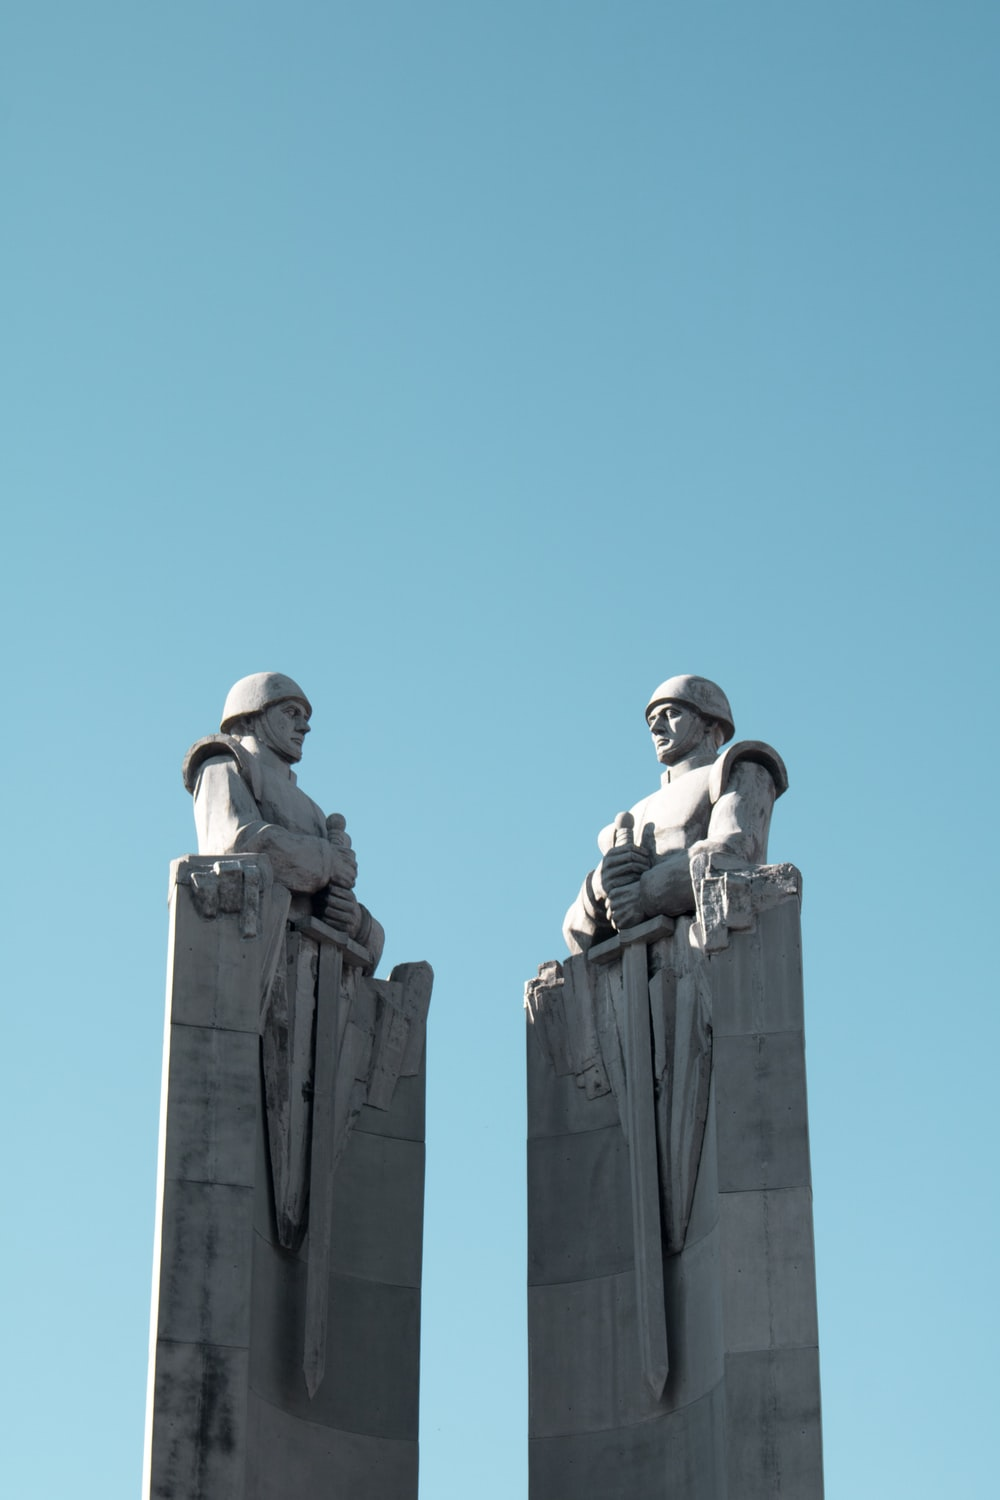 two man themed statues under blue sky